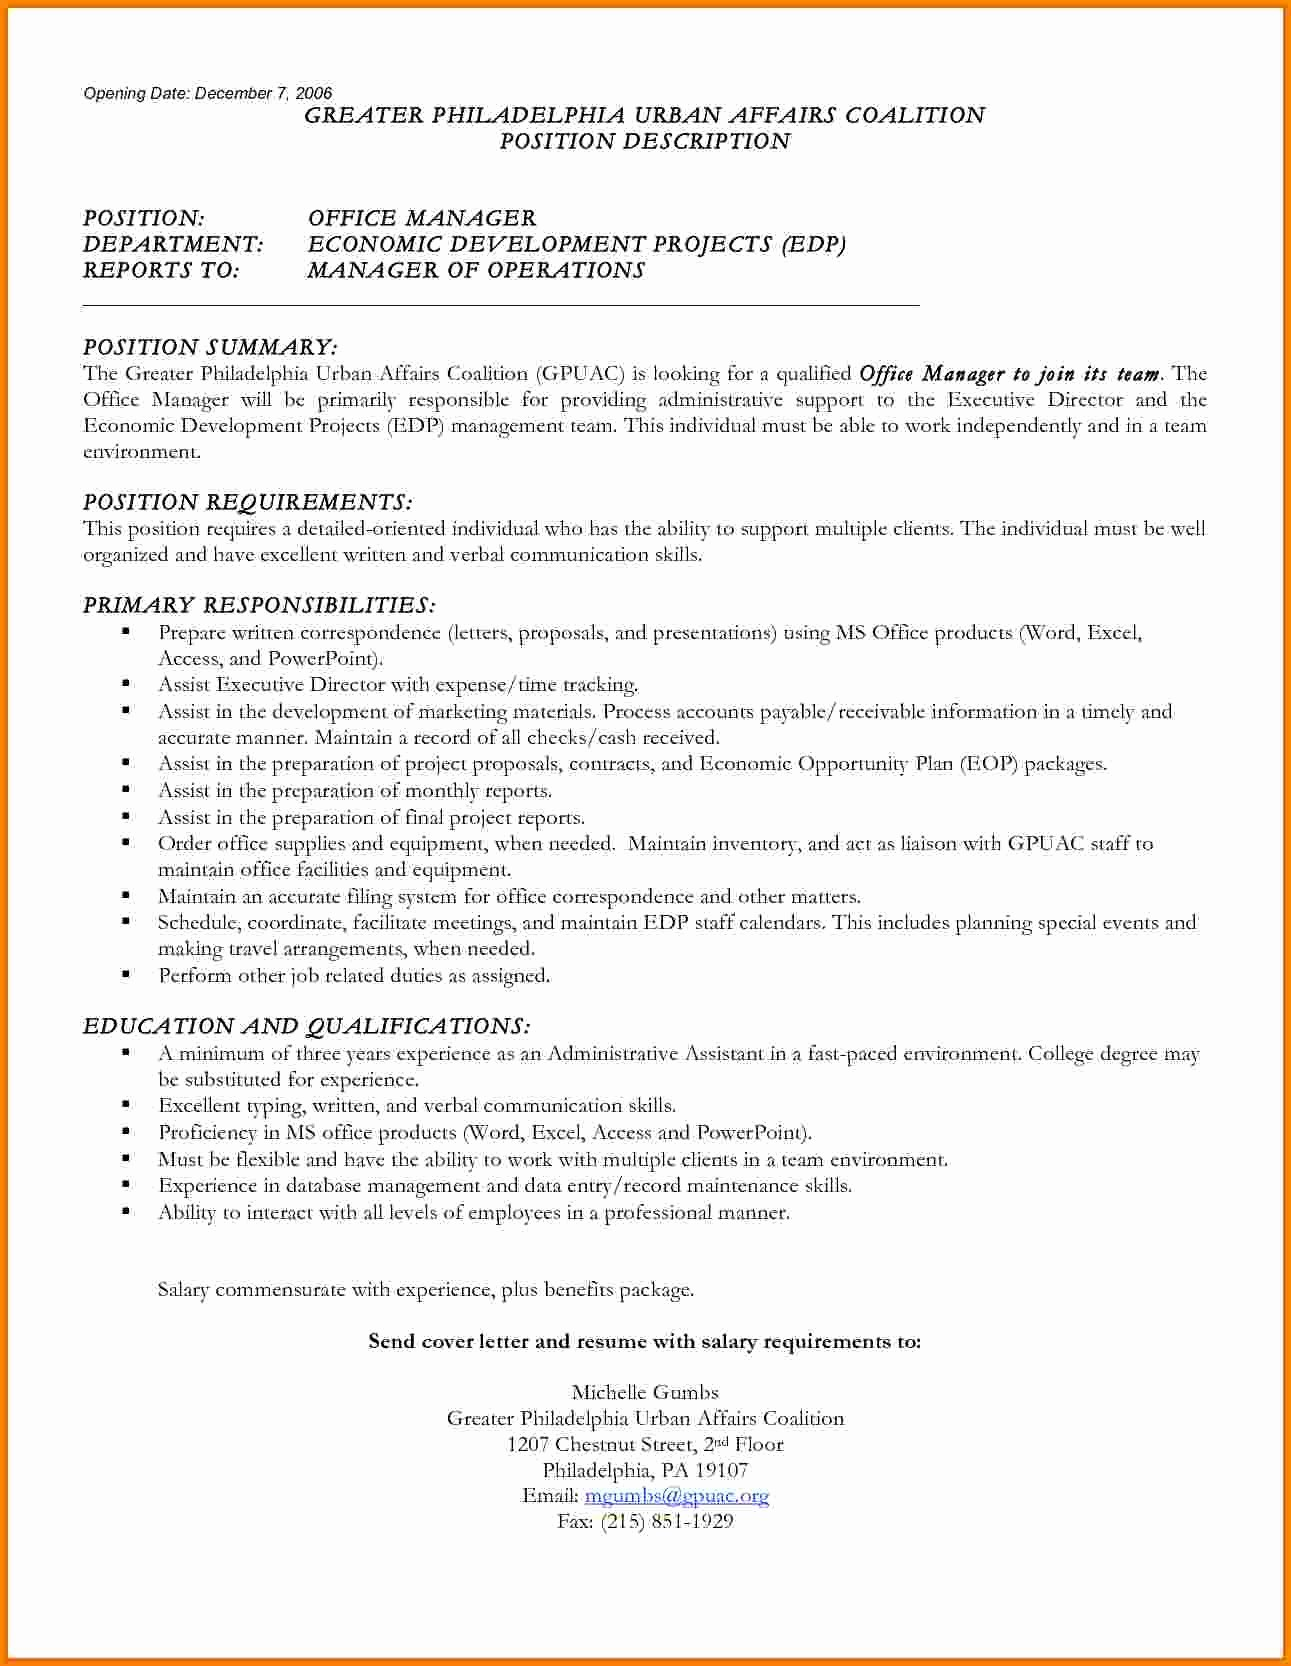 Salary History In Cover Letter Inspirational 3 Salary History On Resume